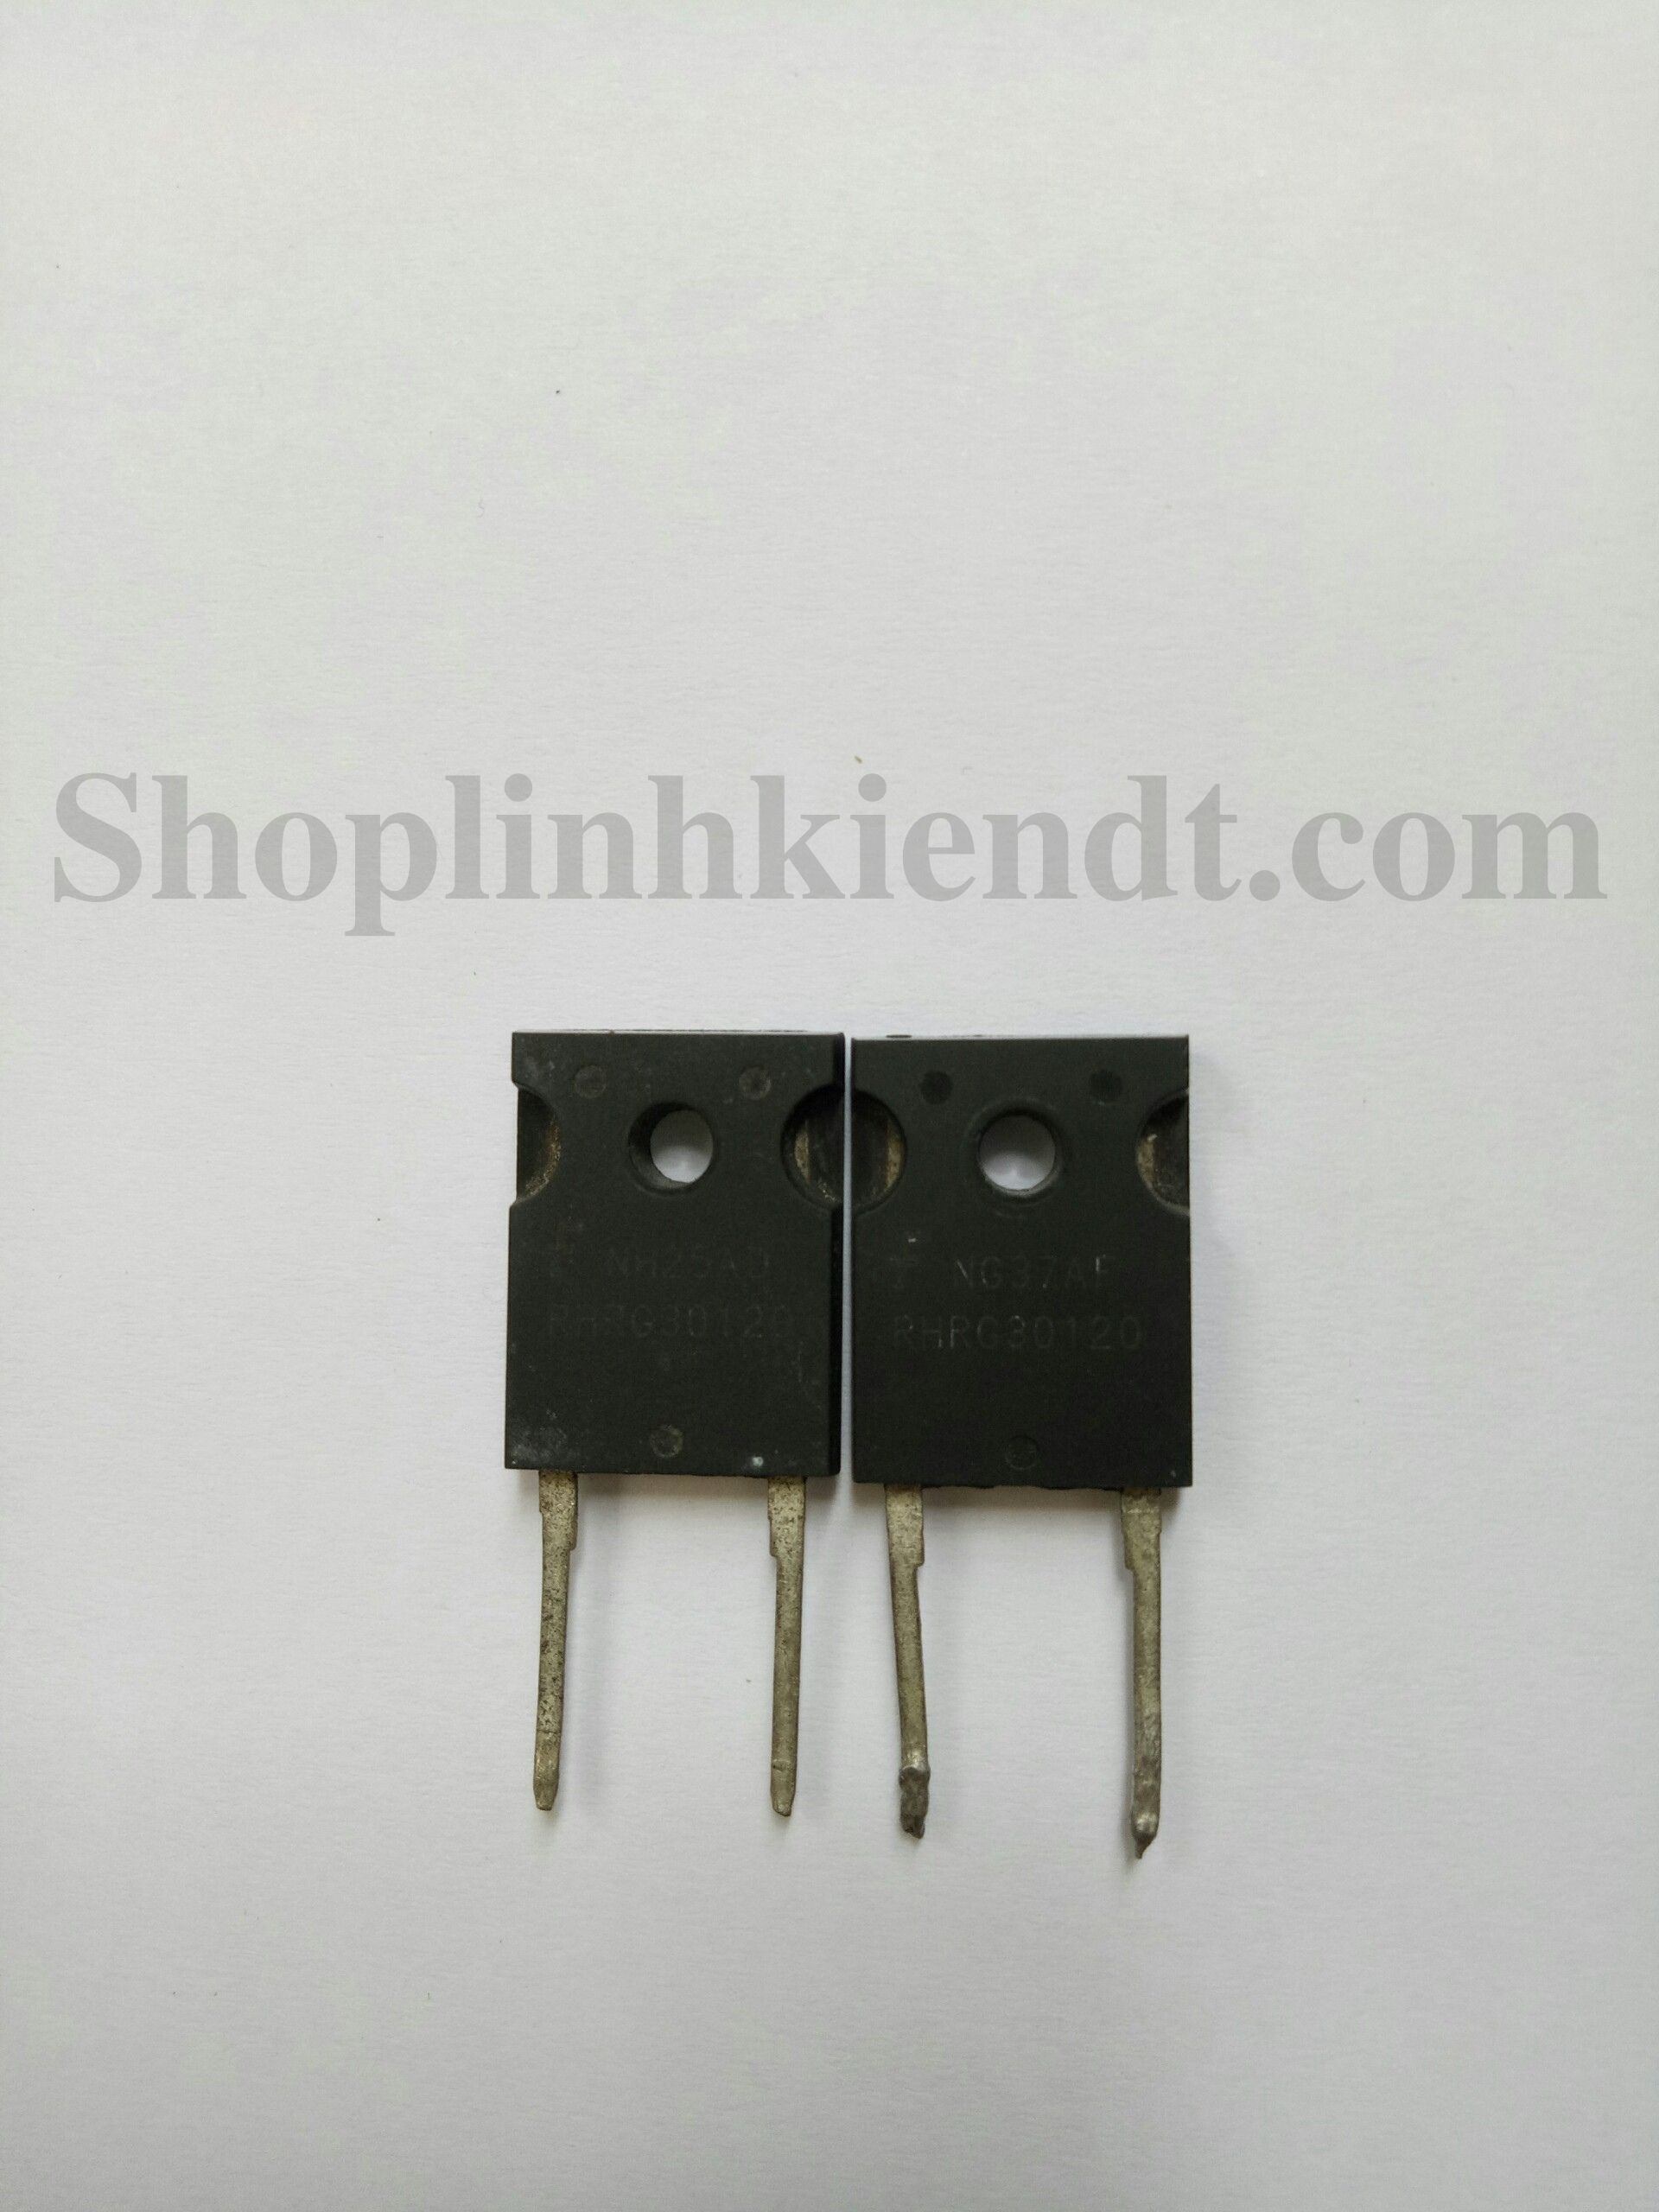 diode-xung-rhrg30120-to-247-30a-1200v-hang-zin-thao-may